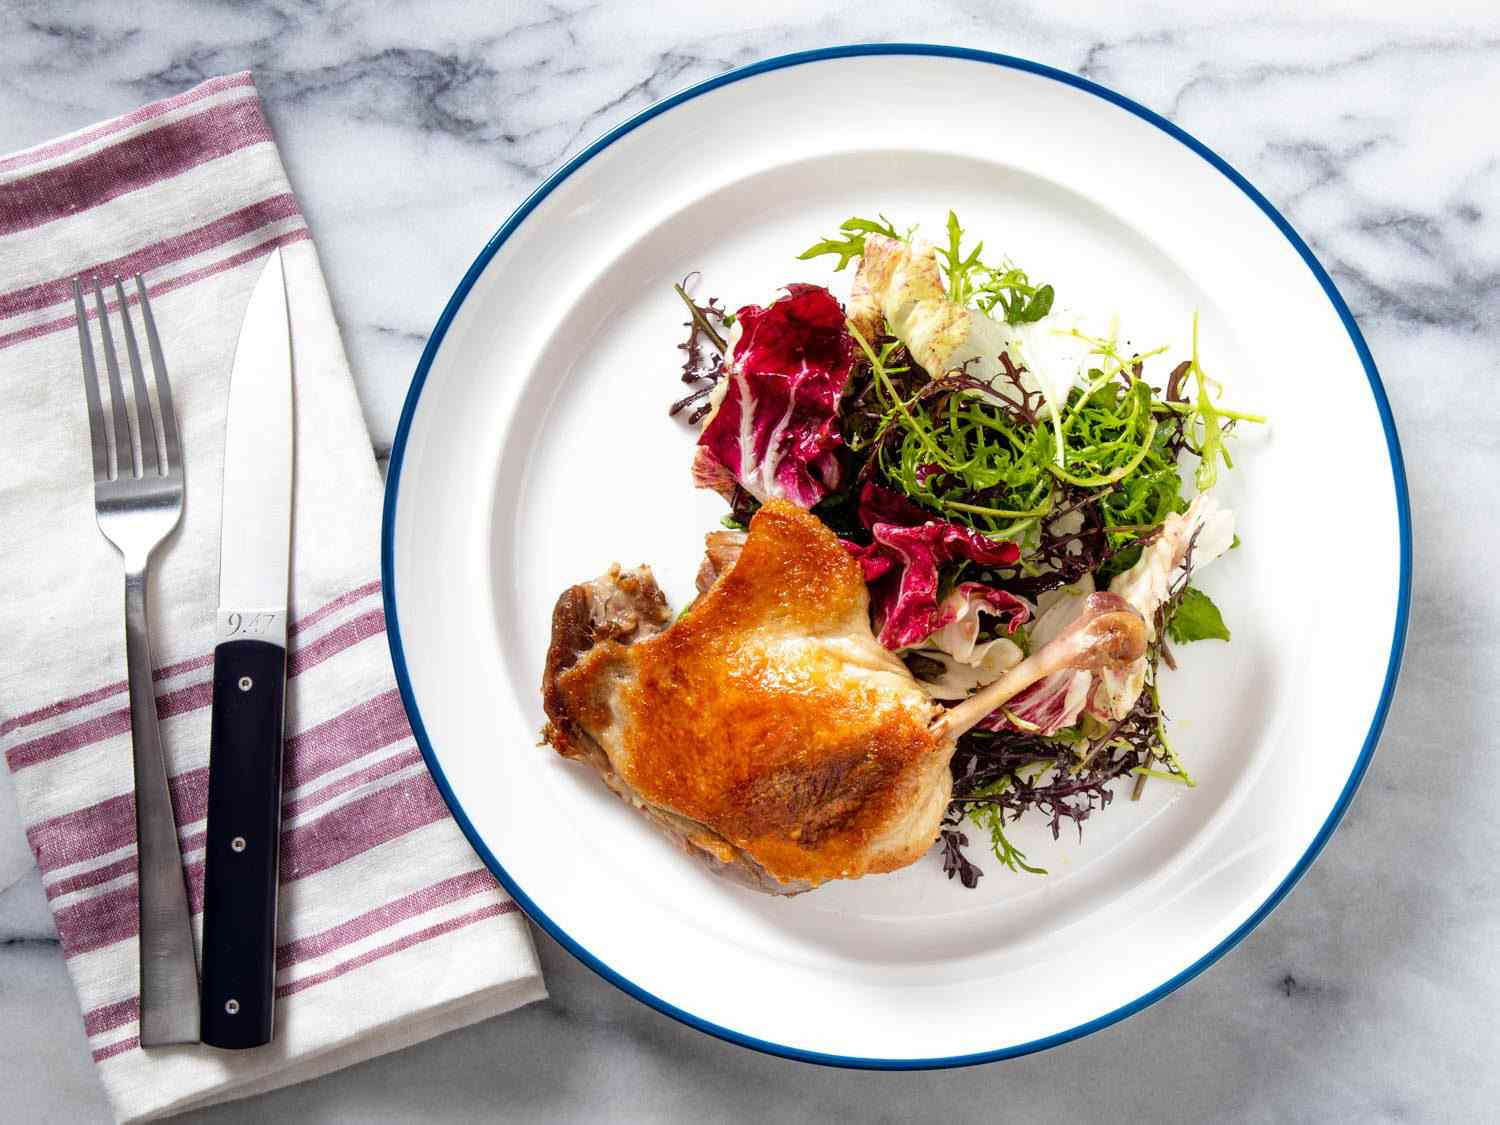 Overhead of a crisped confit duck leg with a mixed greens salad.